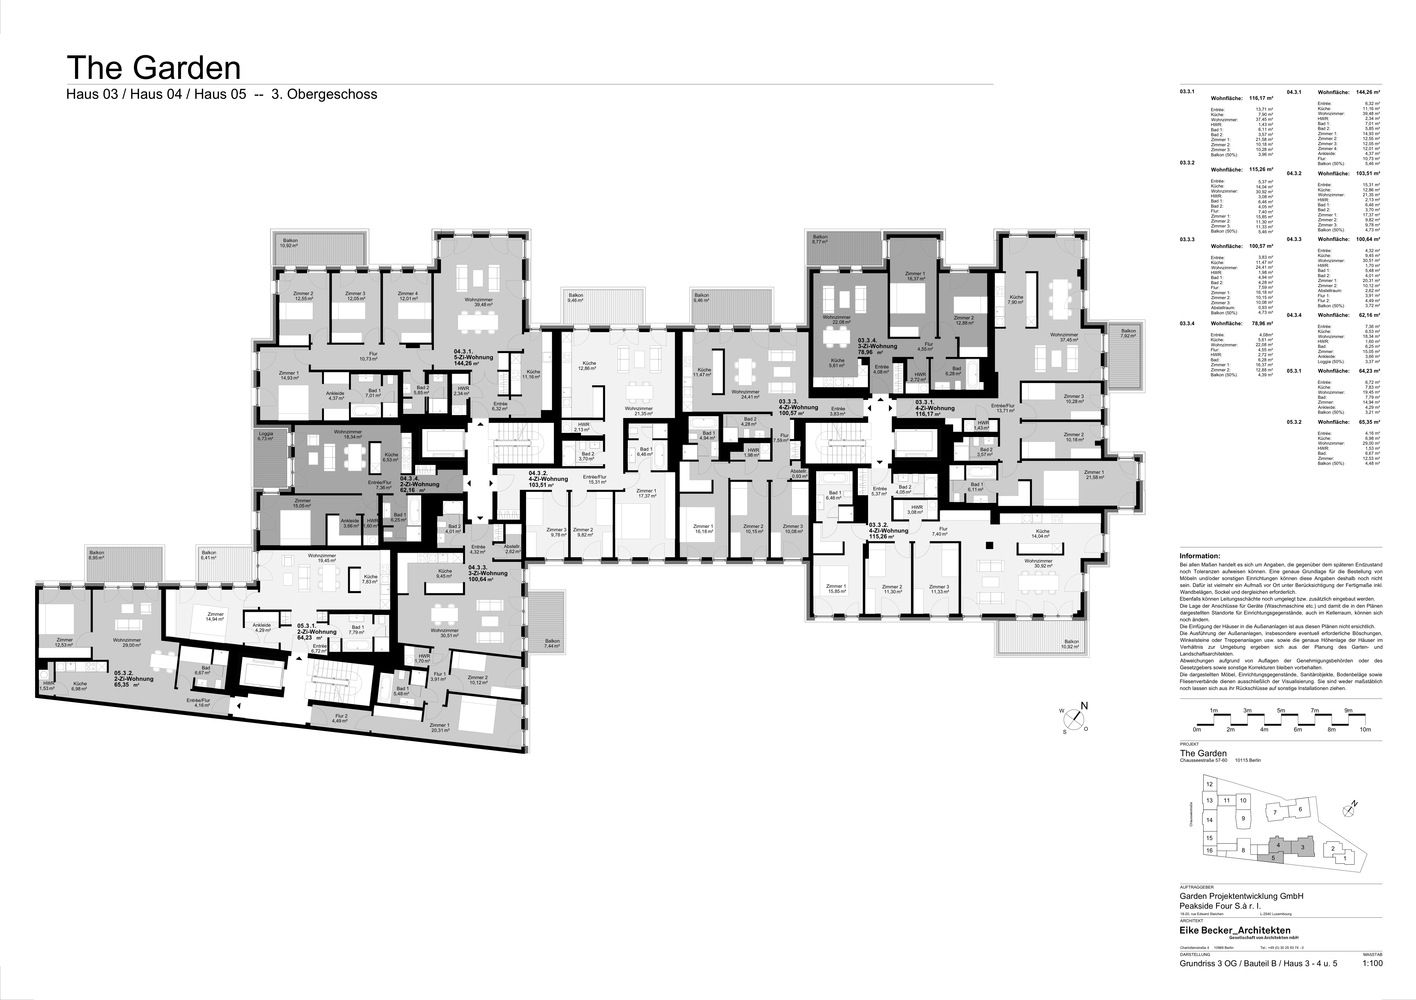 Eike Becker Architekten Gallery Of The Garden / Eike Becker Architekten - 21 | House Layout Plans, Floor Plans, Floor Plan Layout